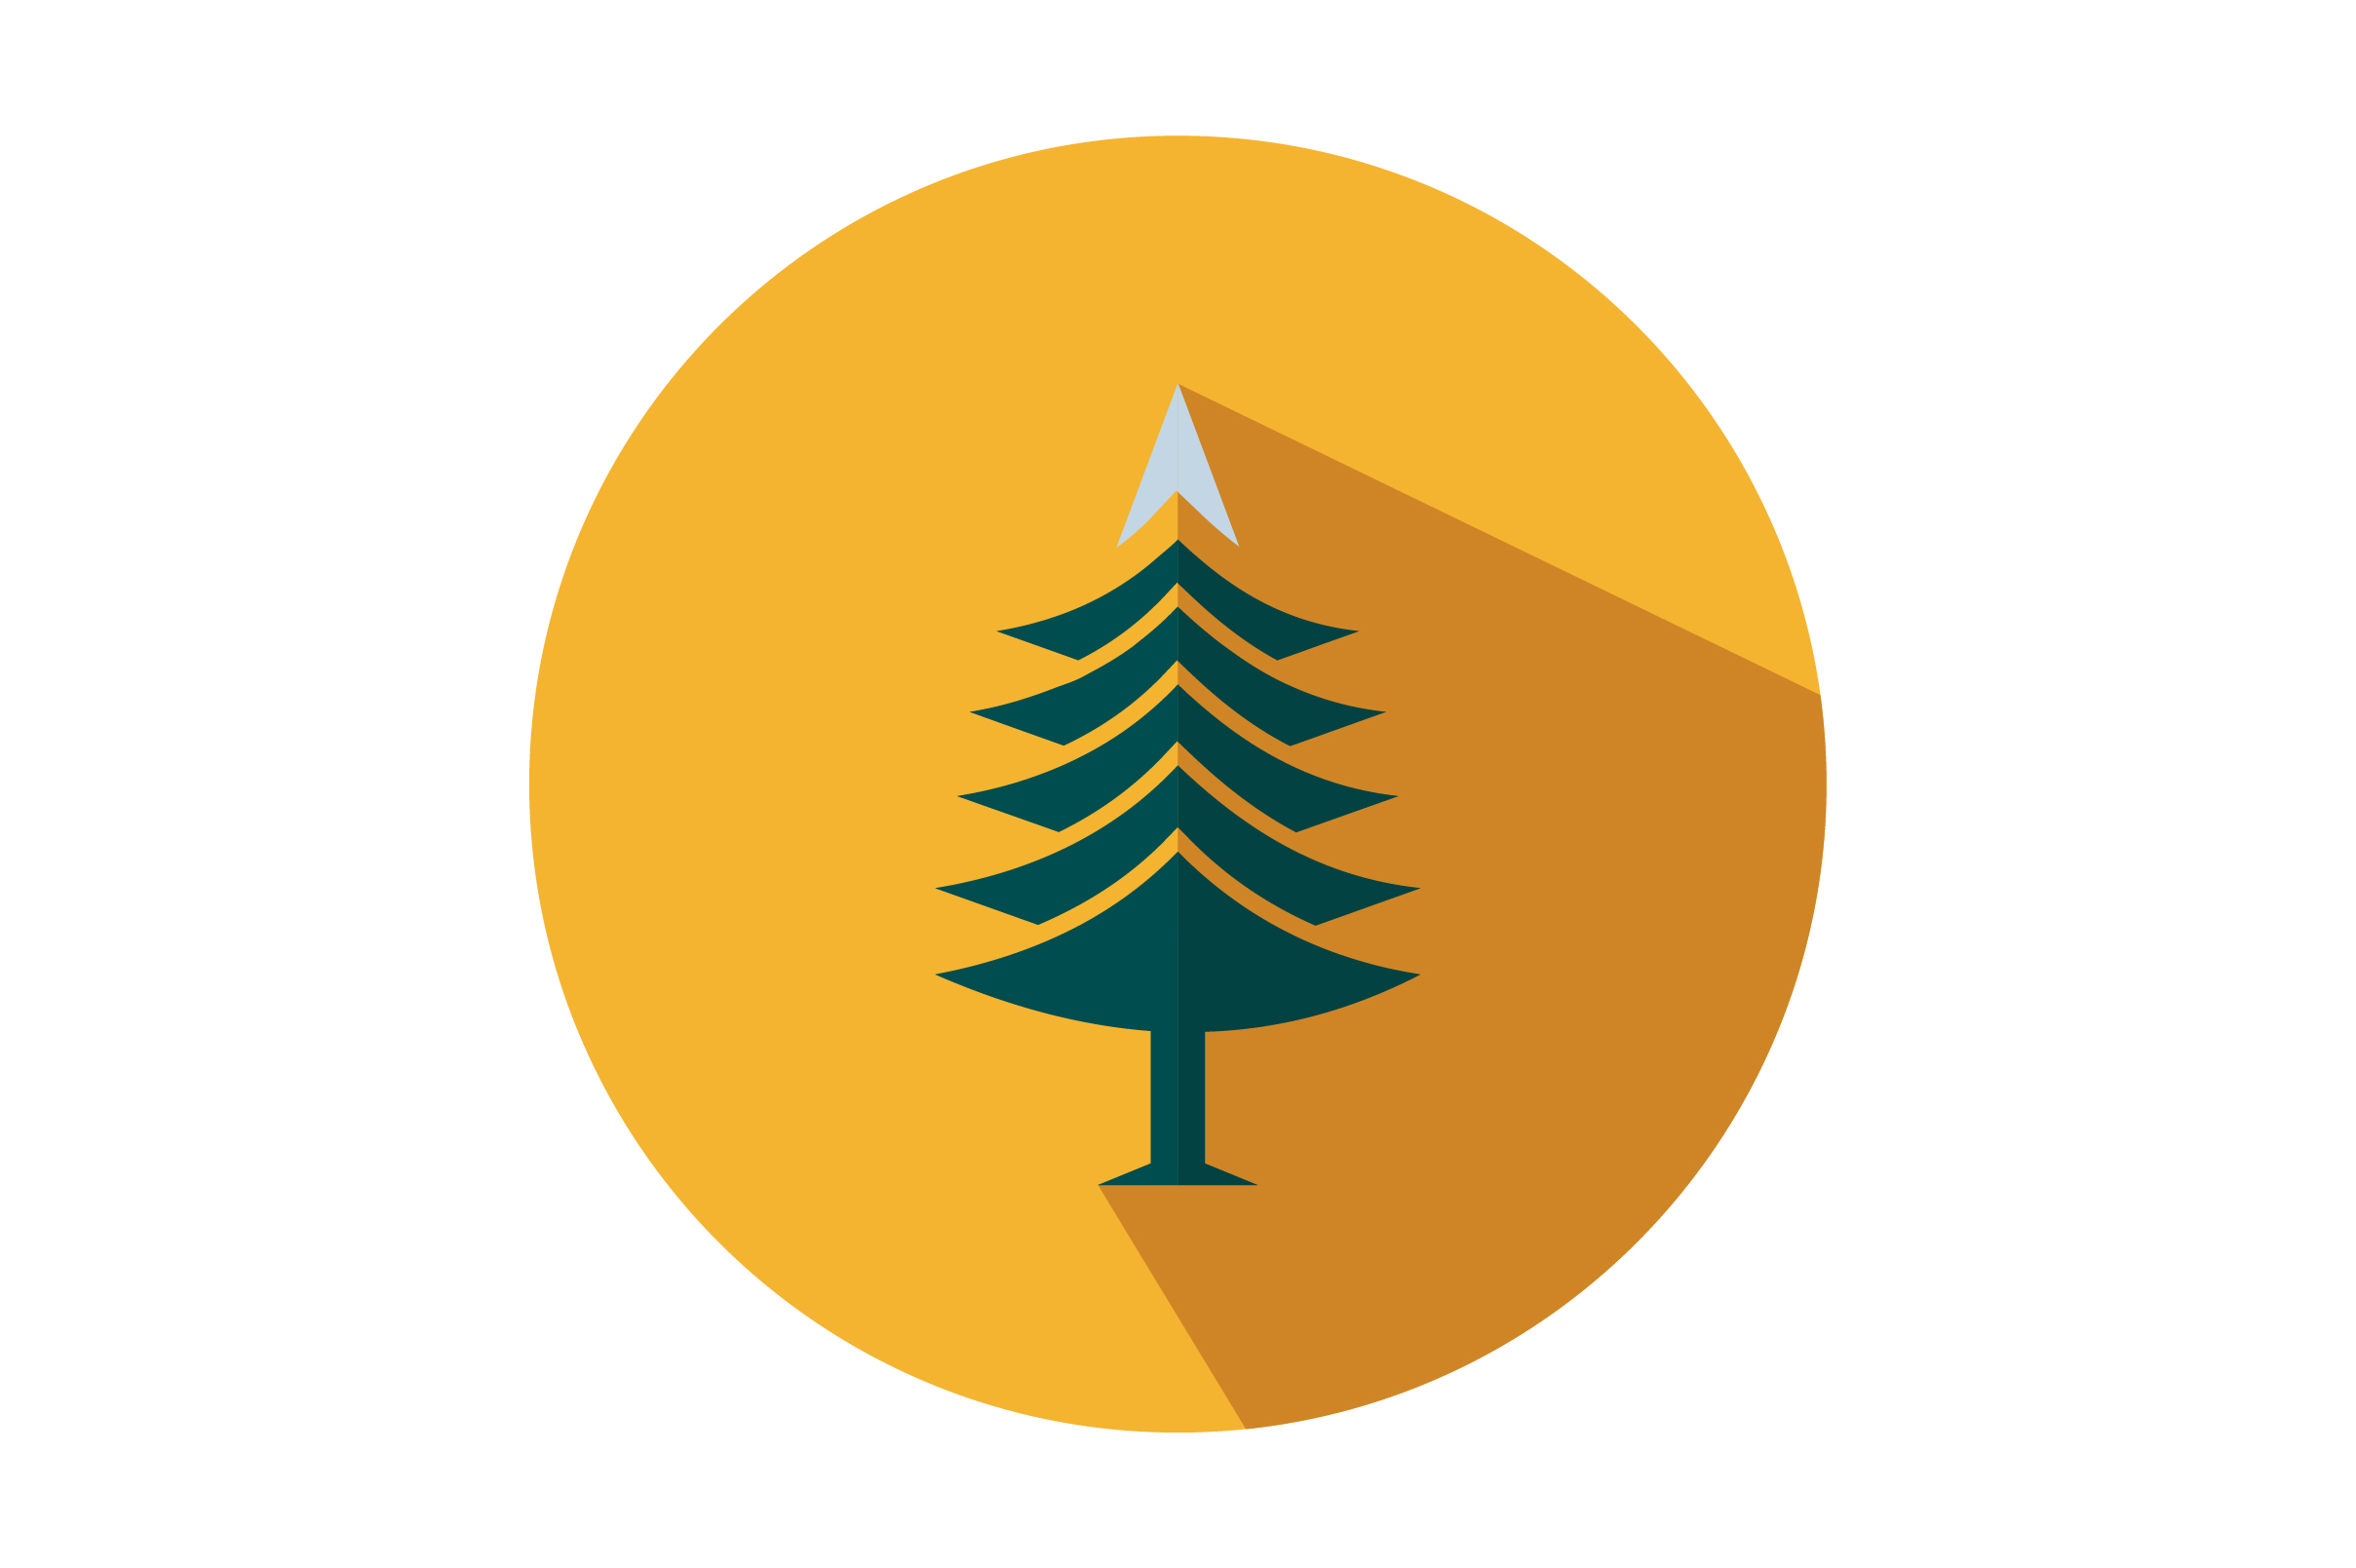 Download Free Tree Flat Icon Vector Graphic By Riduwan Molla Creative Fabrica for Cricut Explore, Silhouette and other cutting machines.